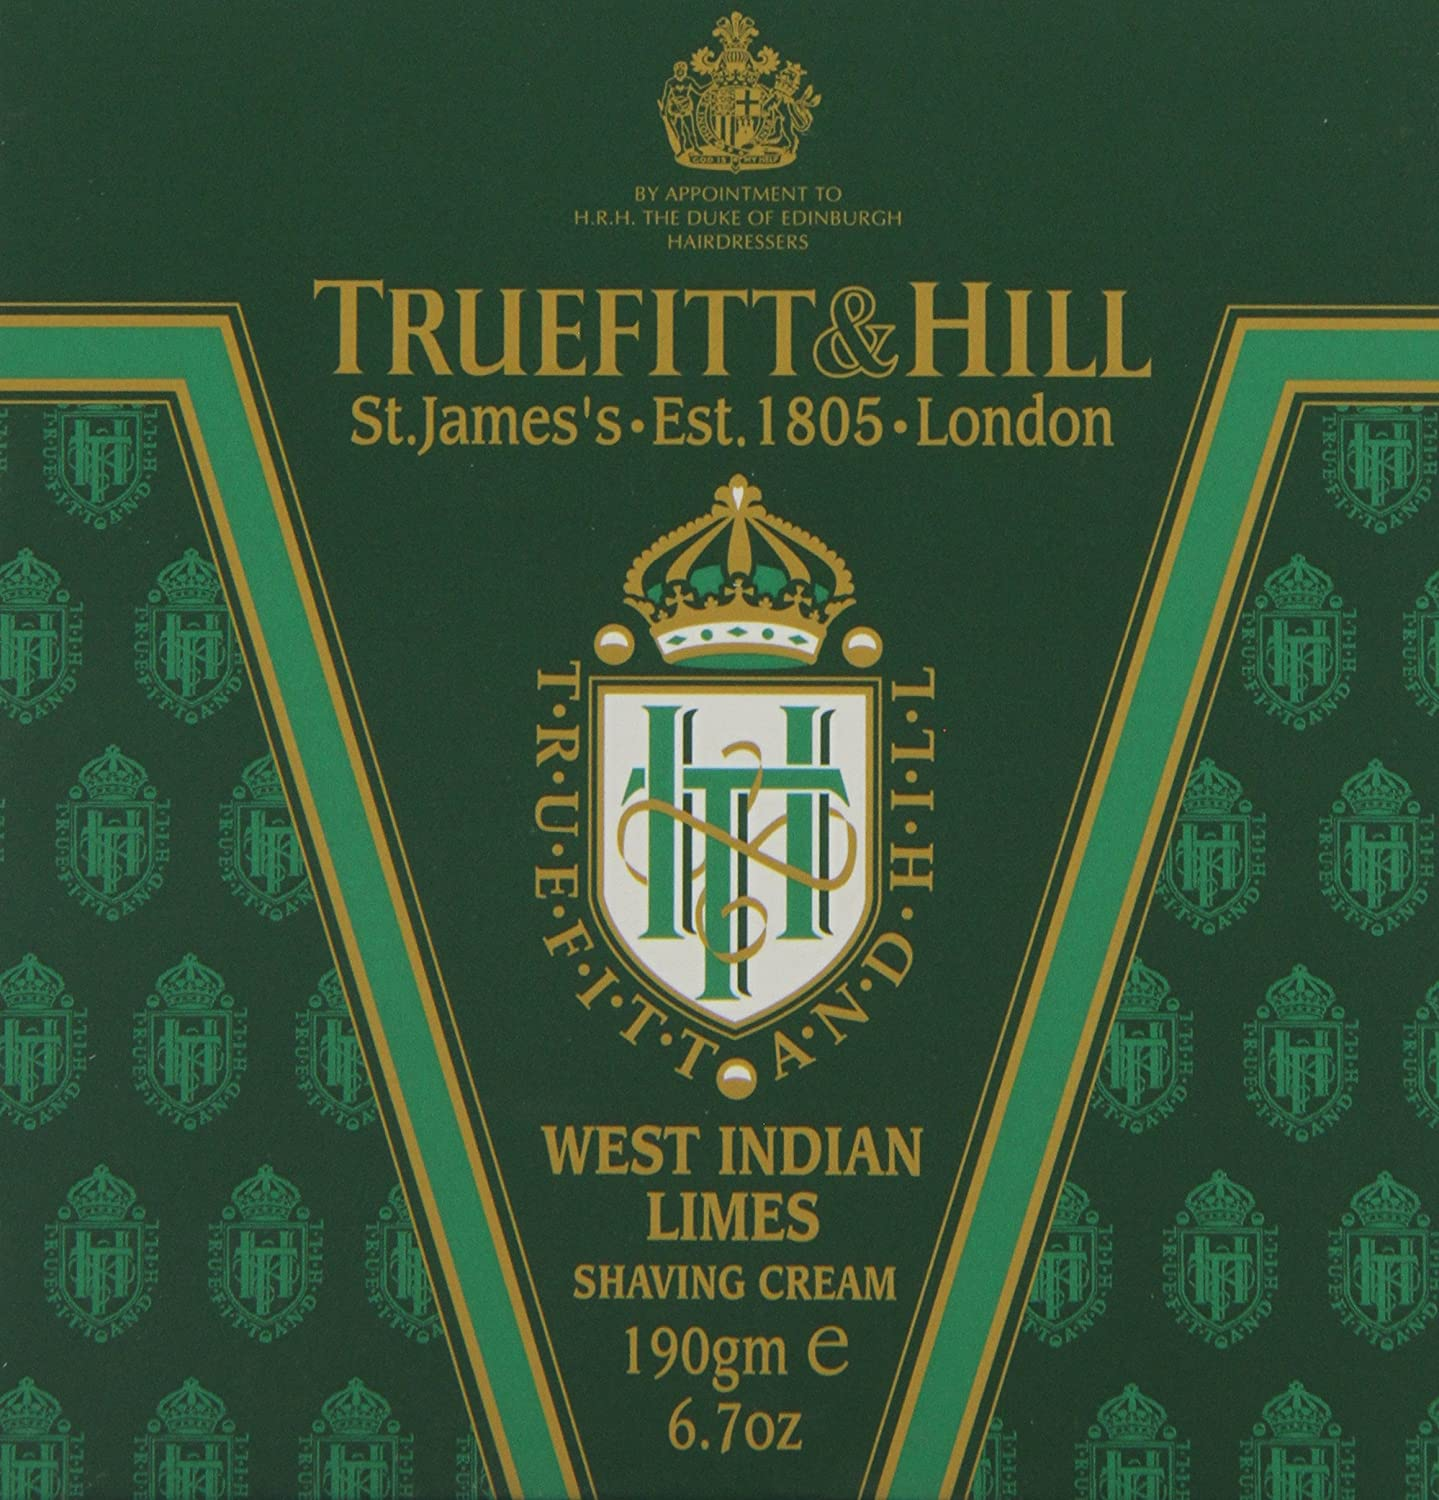 Truefitt & Hill 190 g West Indian Limes crema de afeitado cuenco 24